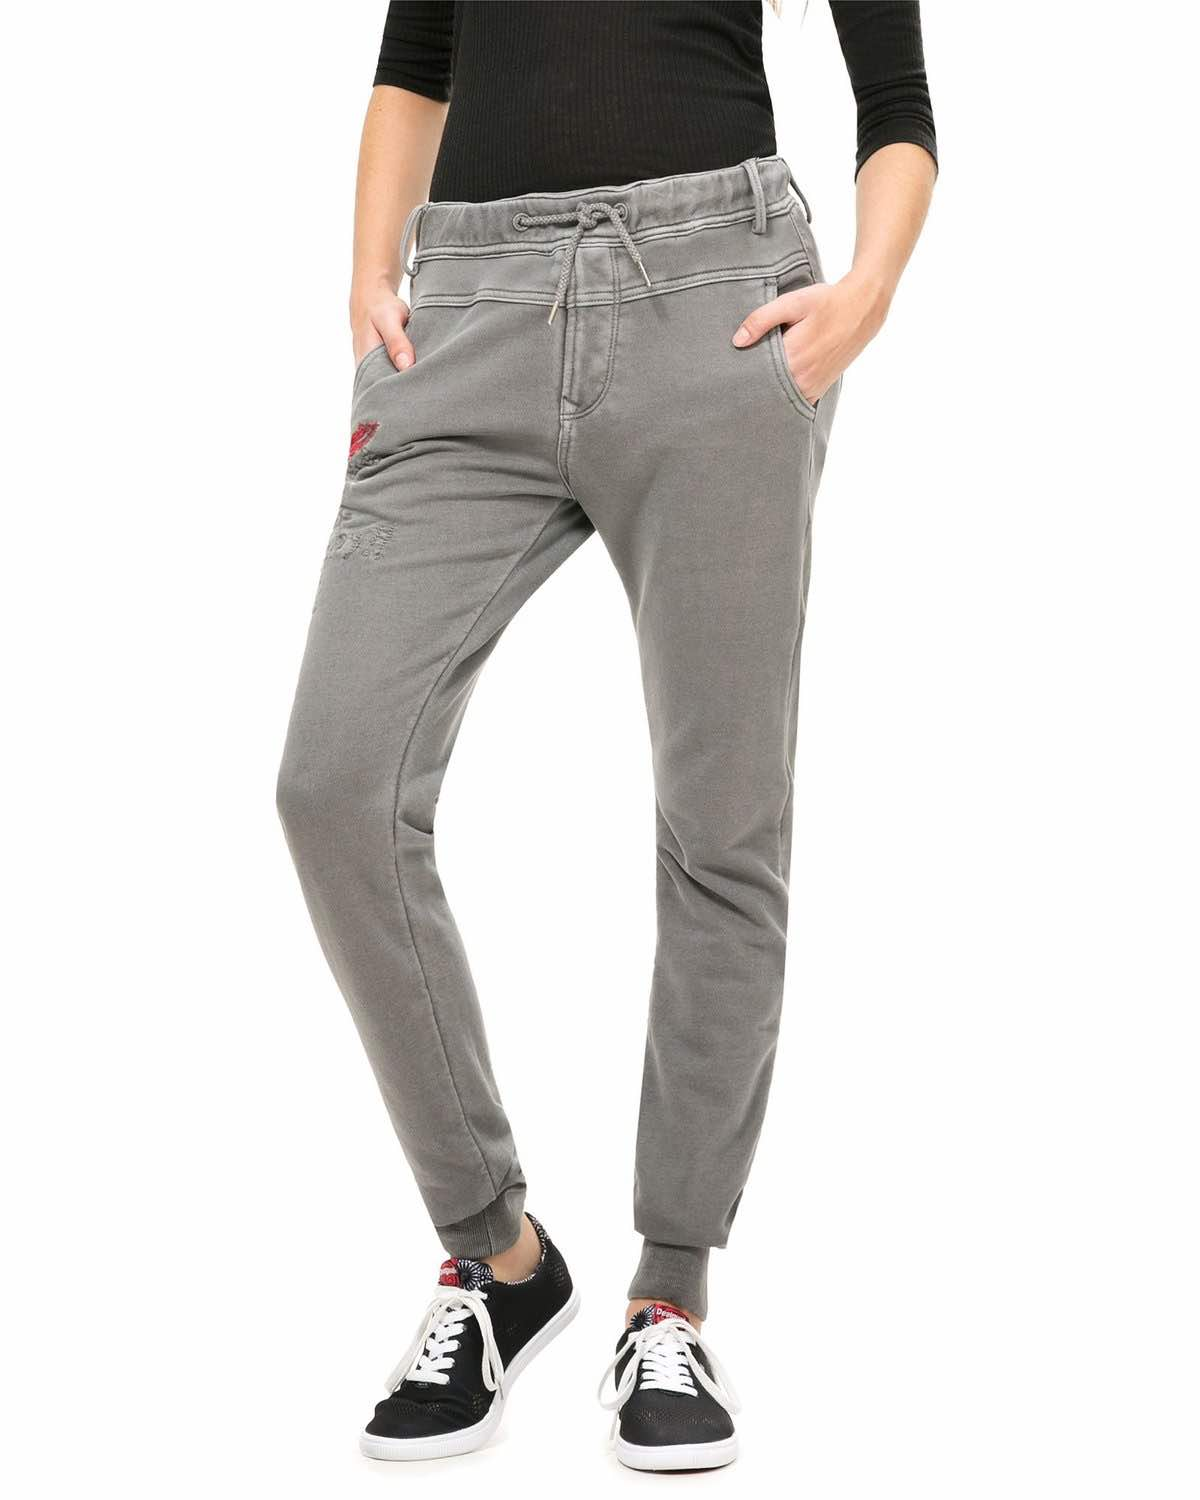 Desigual sweatpants Lima